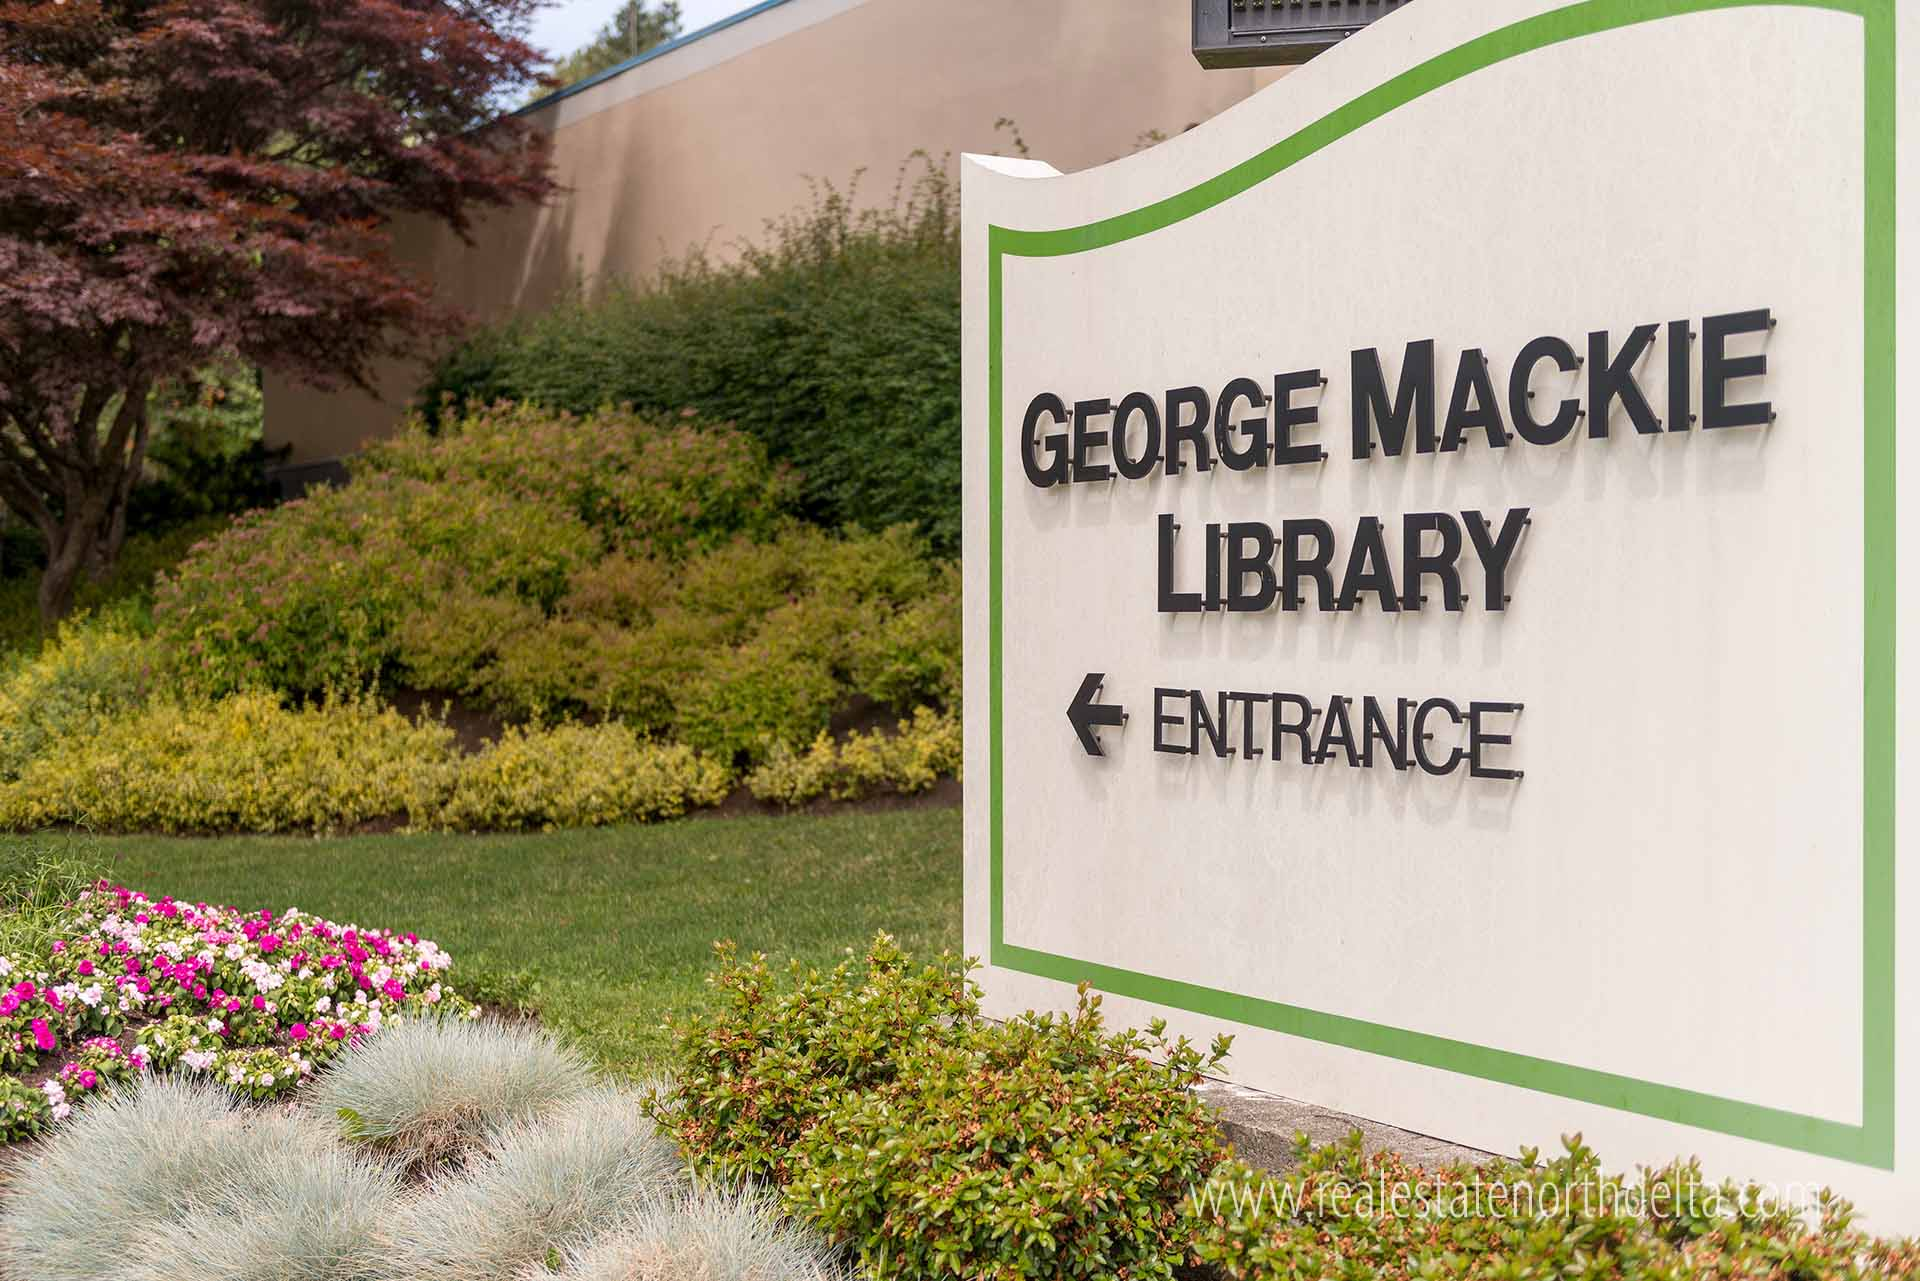 George Mackie Library